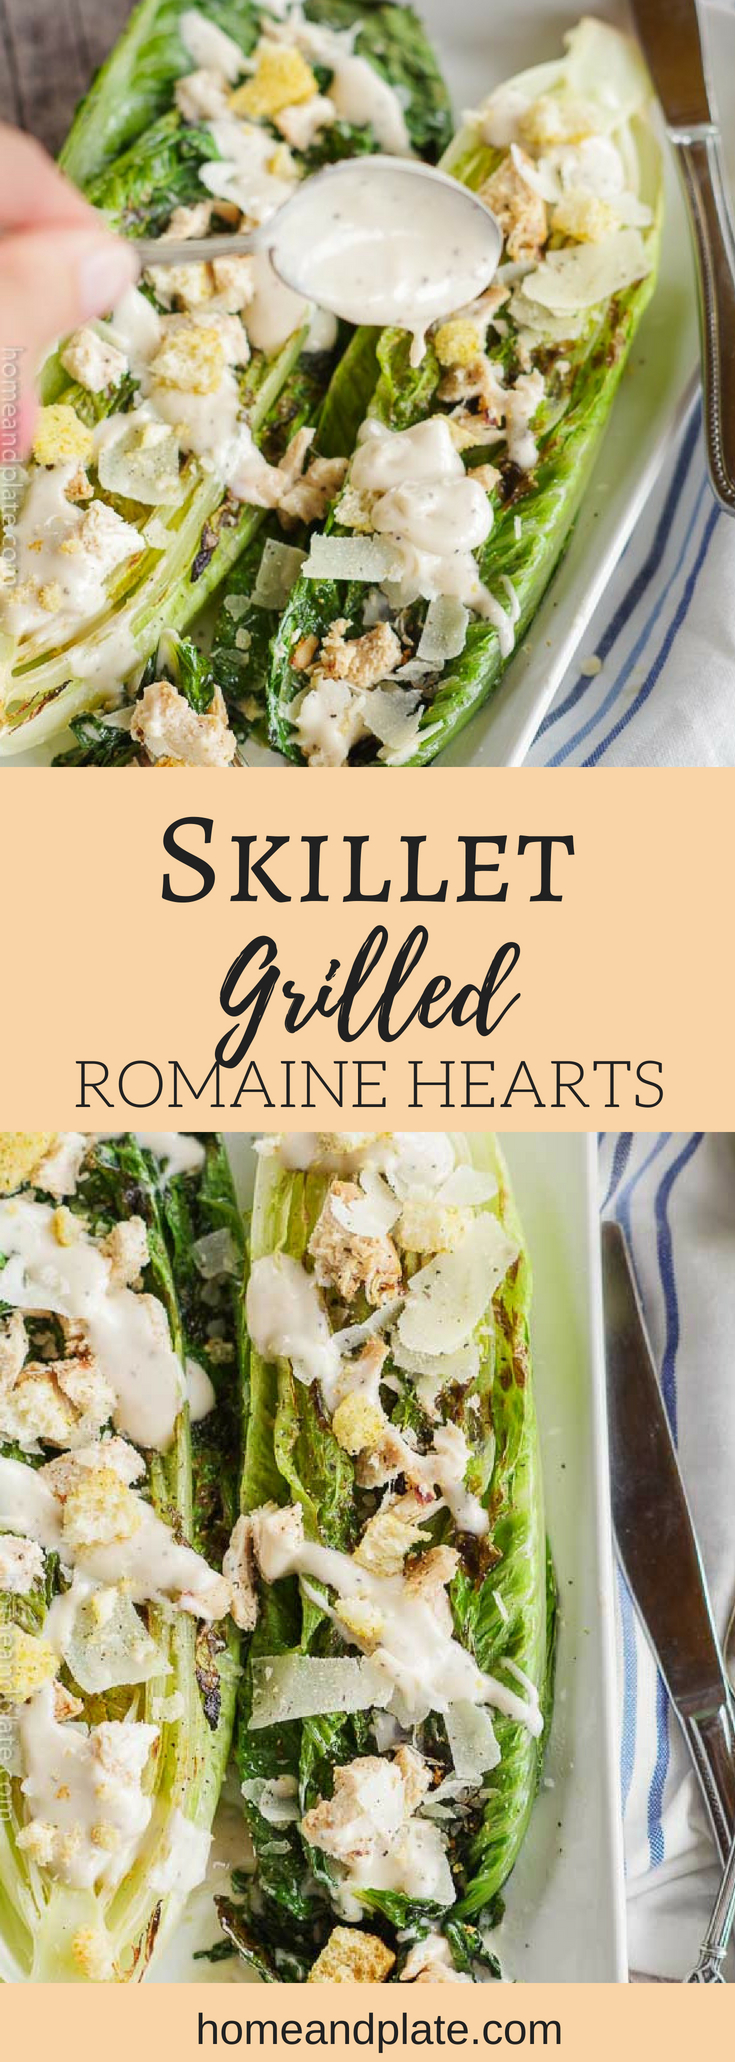 Skillet Grilled Romaine Hearts with Homemade Caesar Dressing | Grilled romaine hearts take on a smokey flavor and are delicious with a drizzle of my homemade Caesar dressing. Grilled outdoors or inside using a skillet grill, you can enjoy this summer classic all year round. #caesarsalad #grilledlettuces #grilledromaine